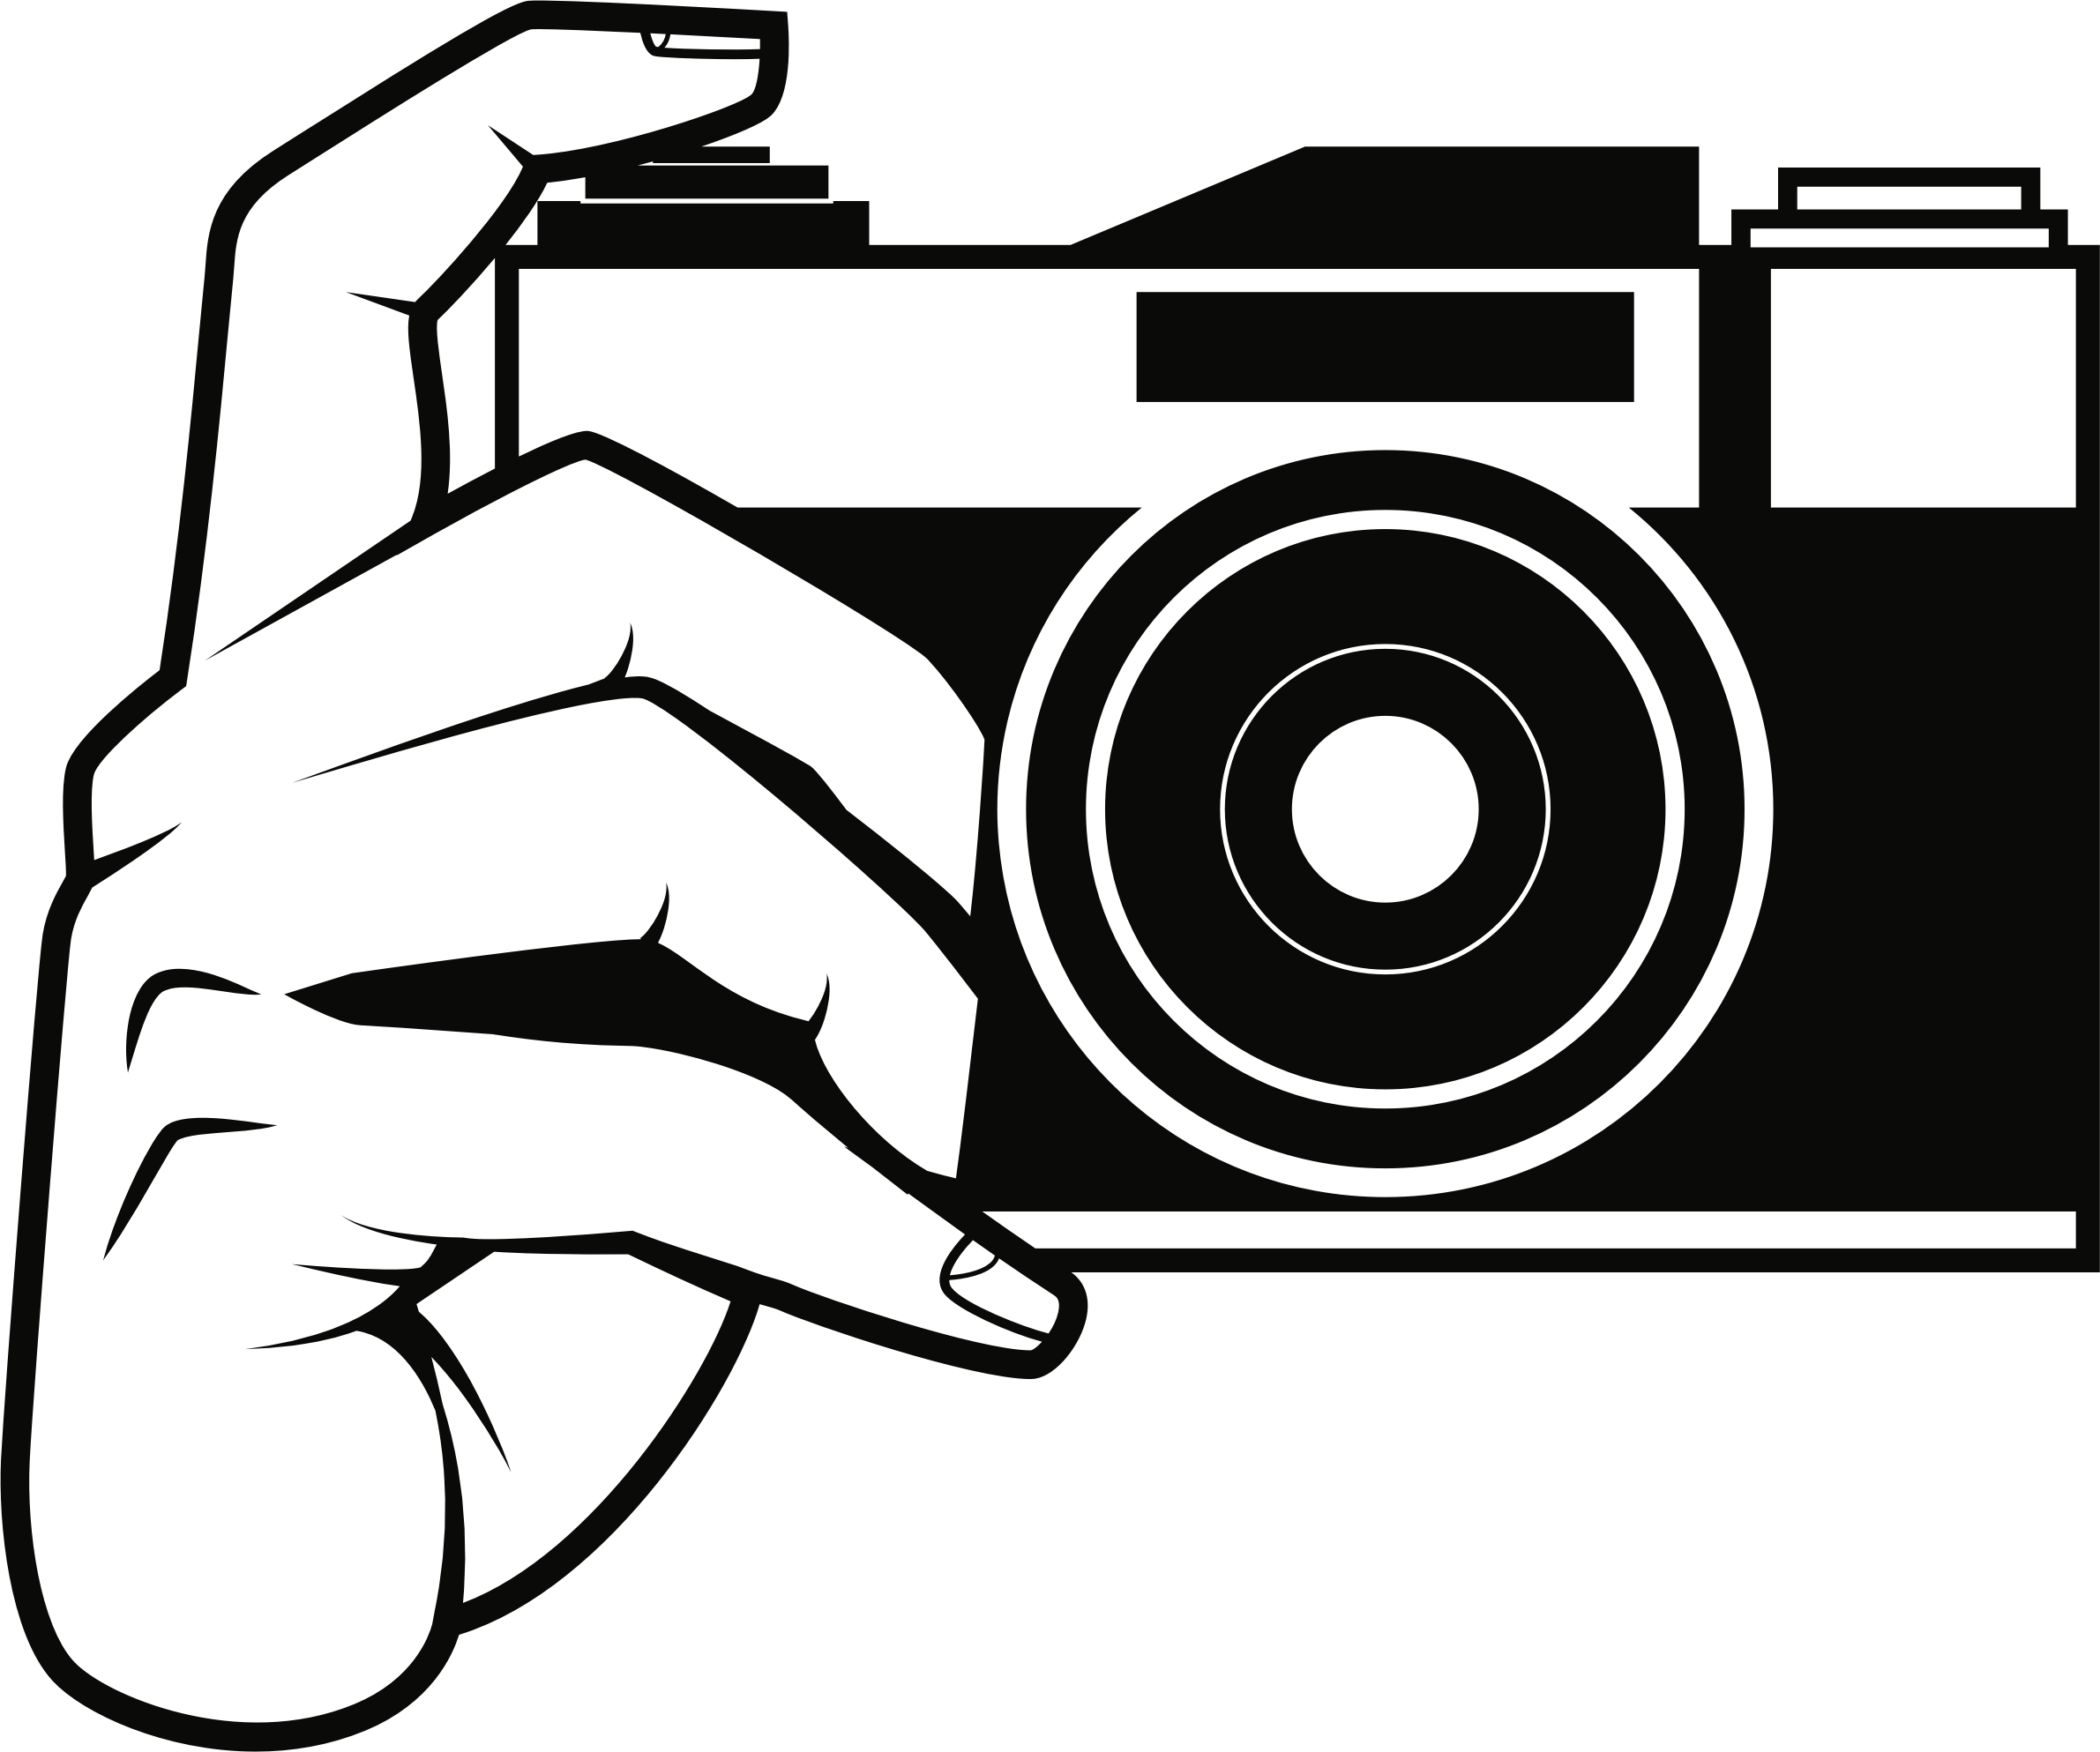 clipart camera 1 rh openclipart org clip art camera images clipart camping silhouette